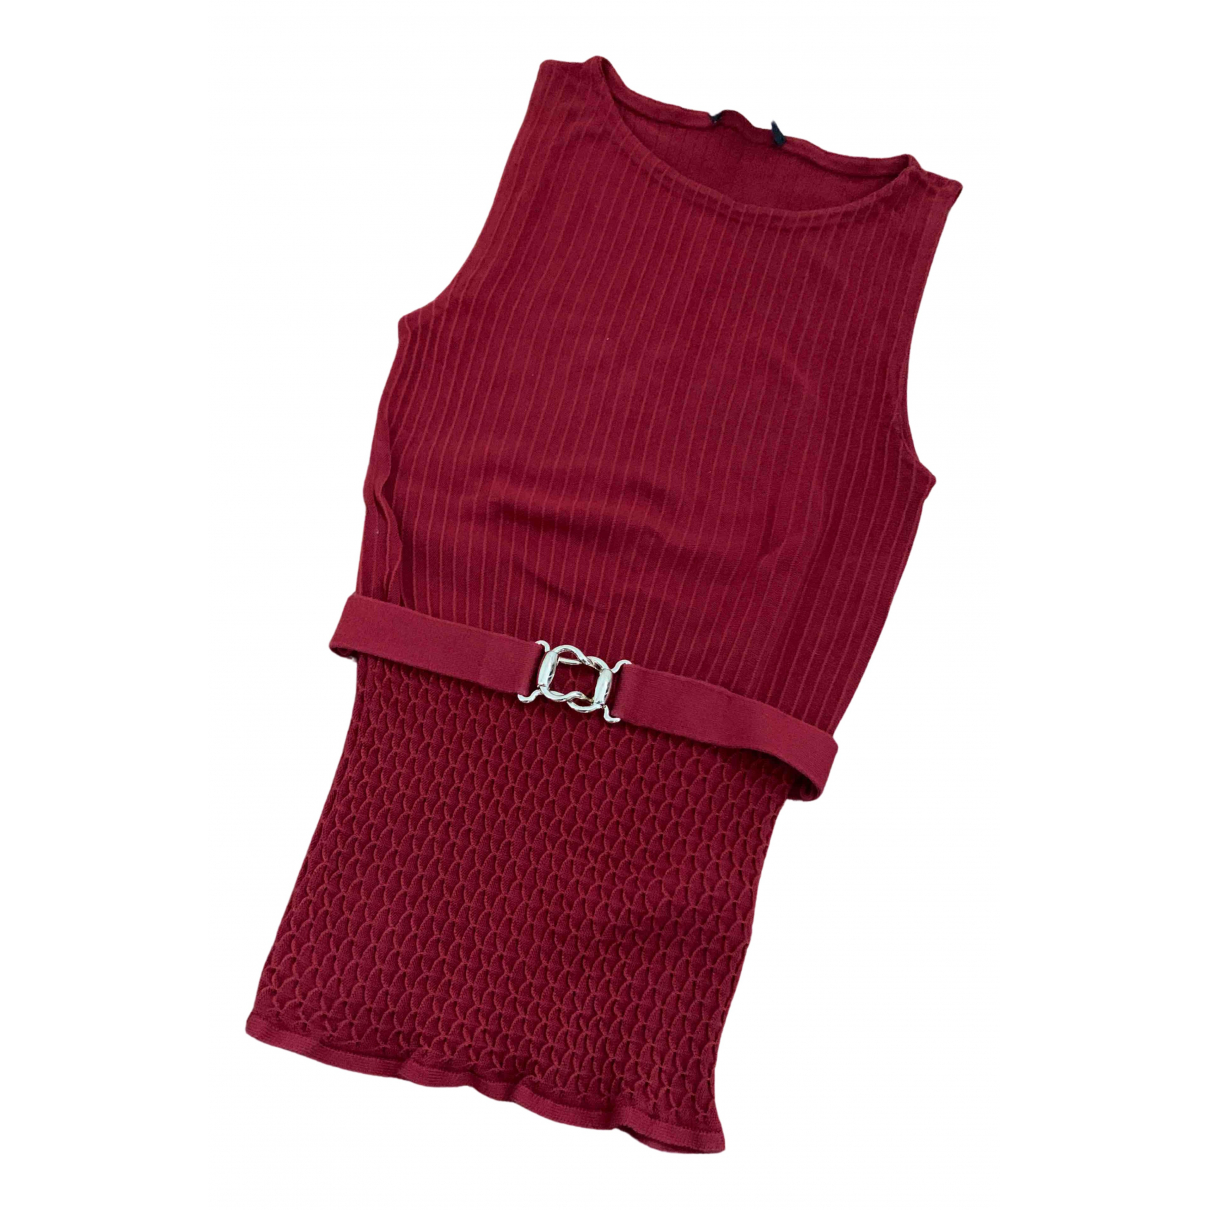 Gucci N Red Cotton  top for Women M International